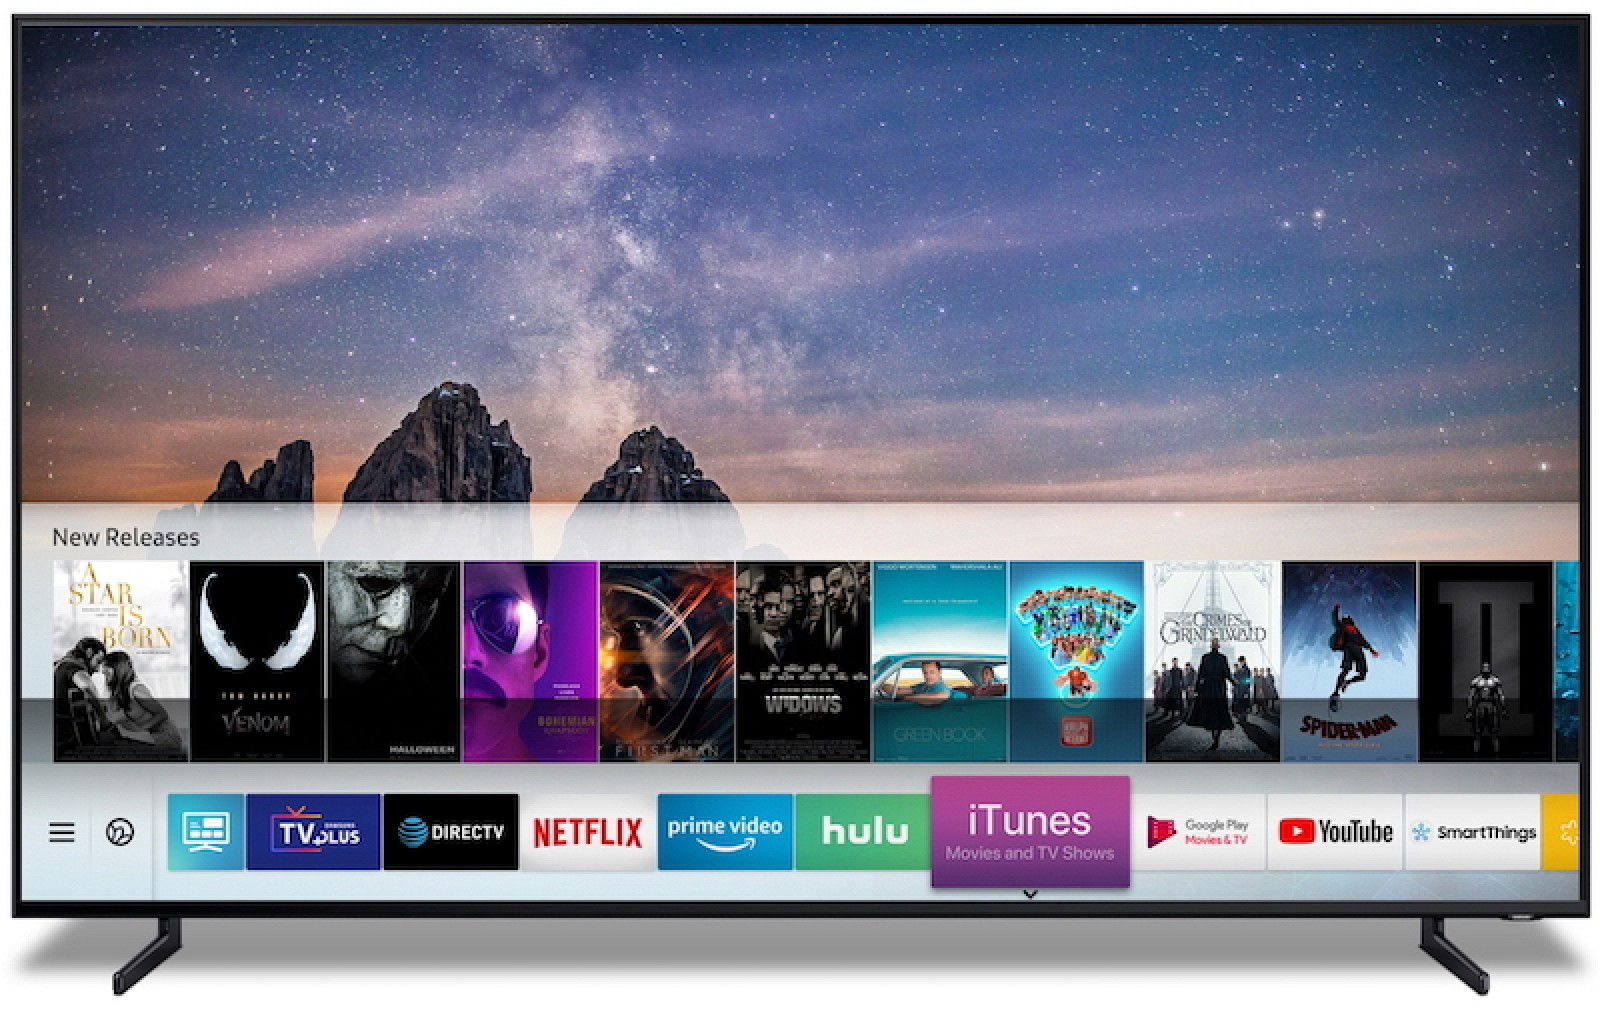 iTunes Movies and TV Shows a AirPlay 2 ve Samsung Smart TV